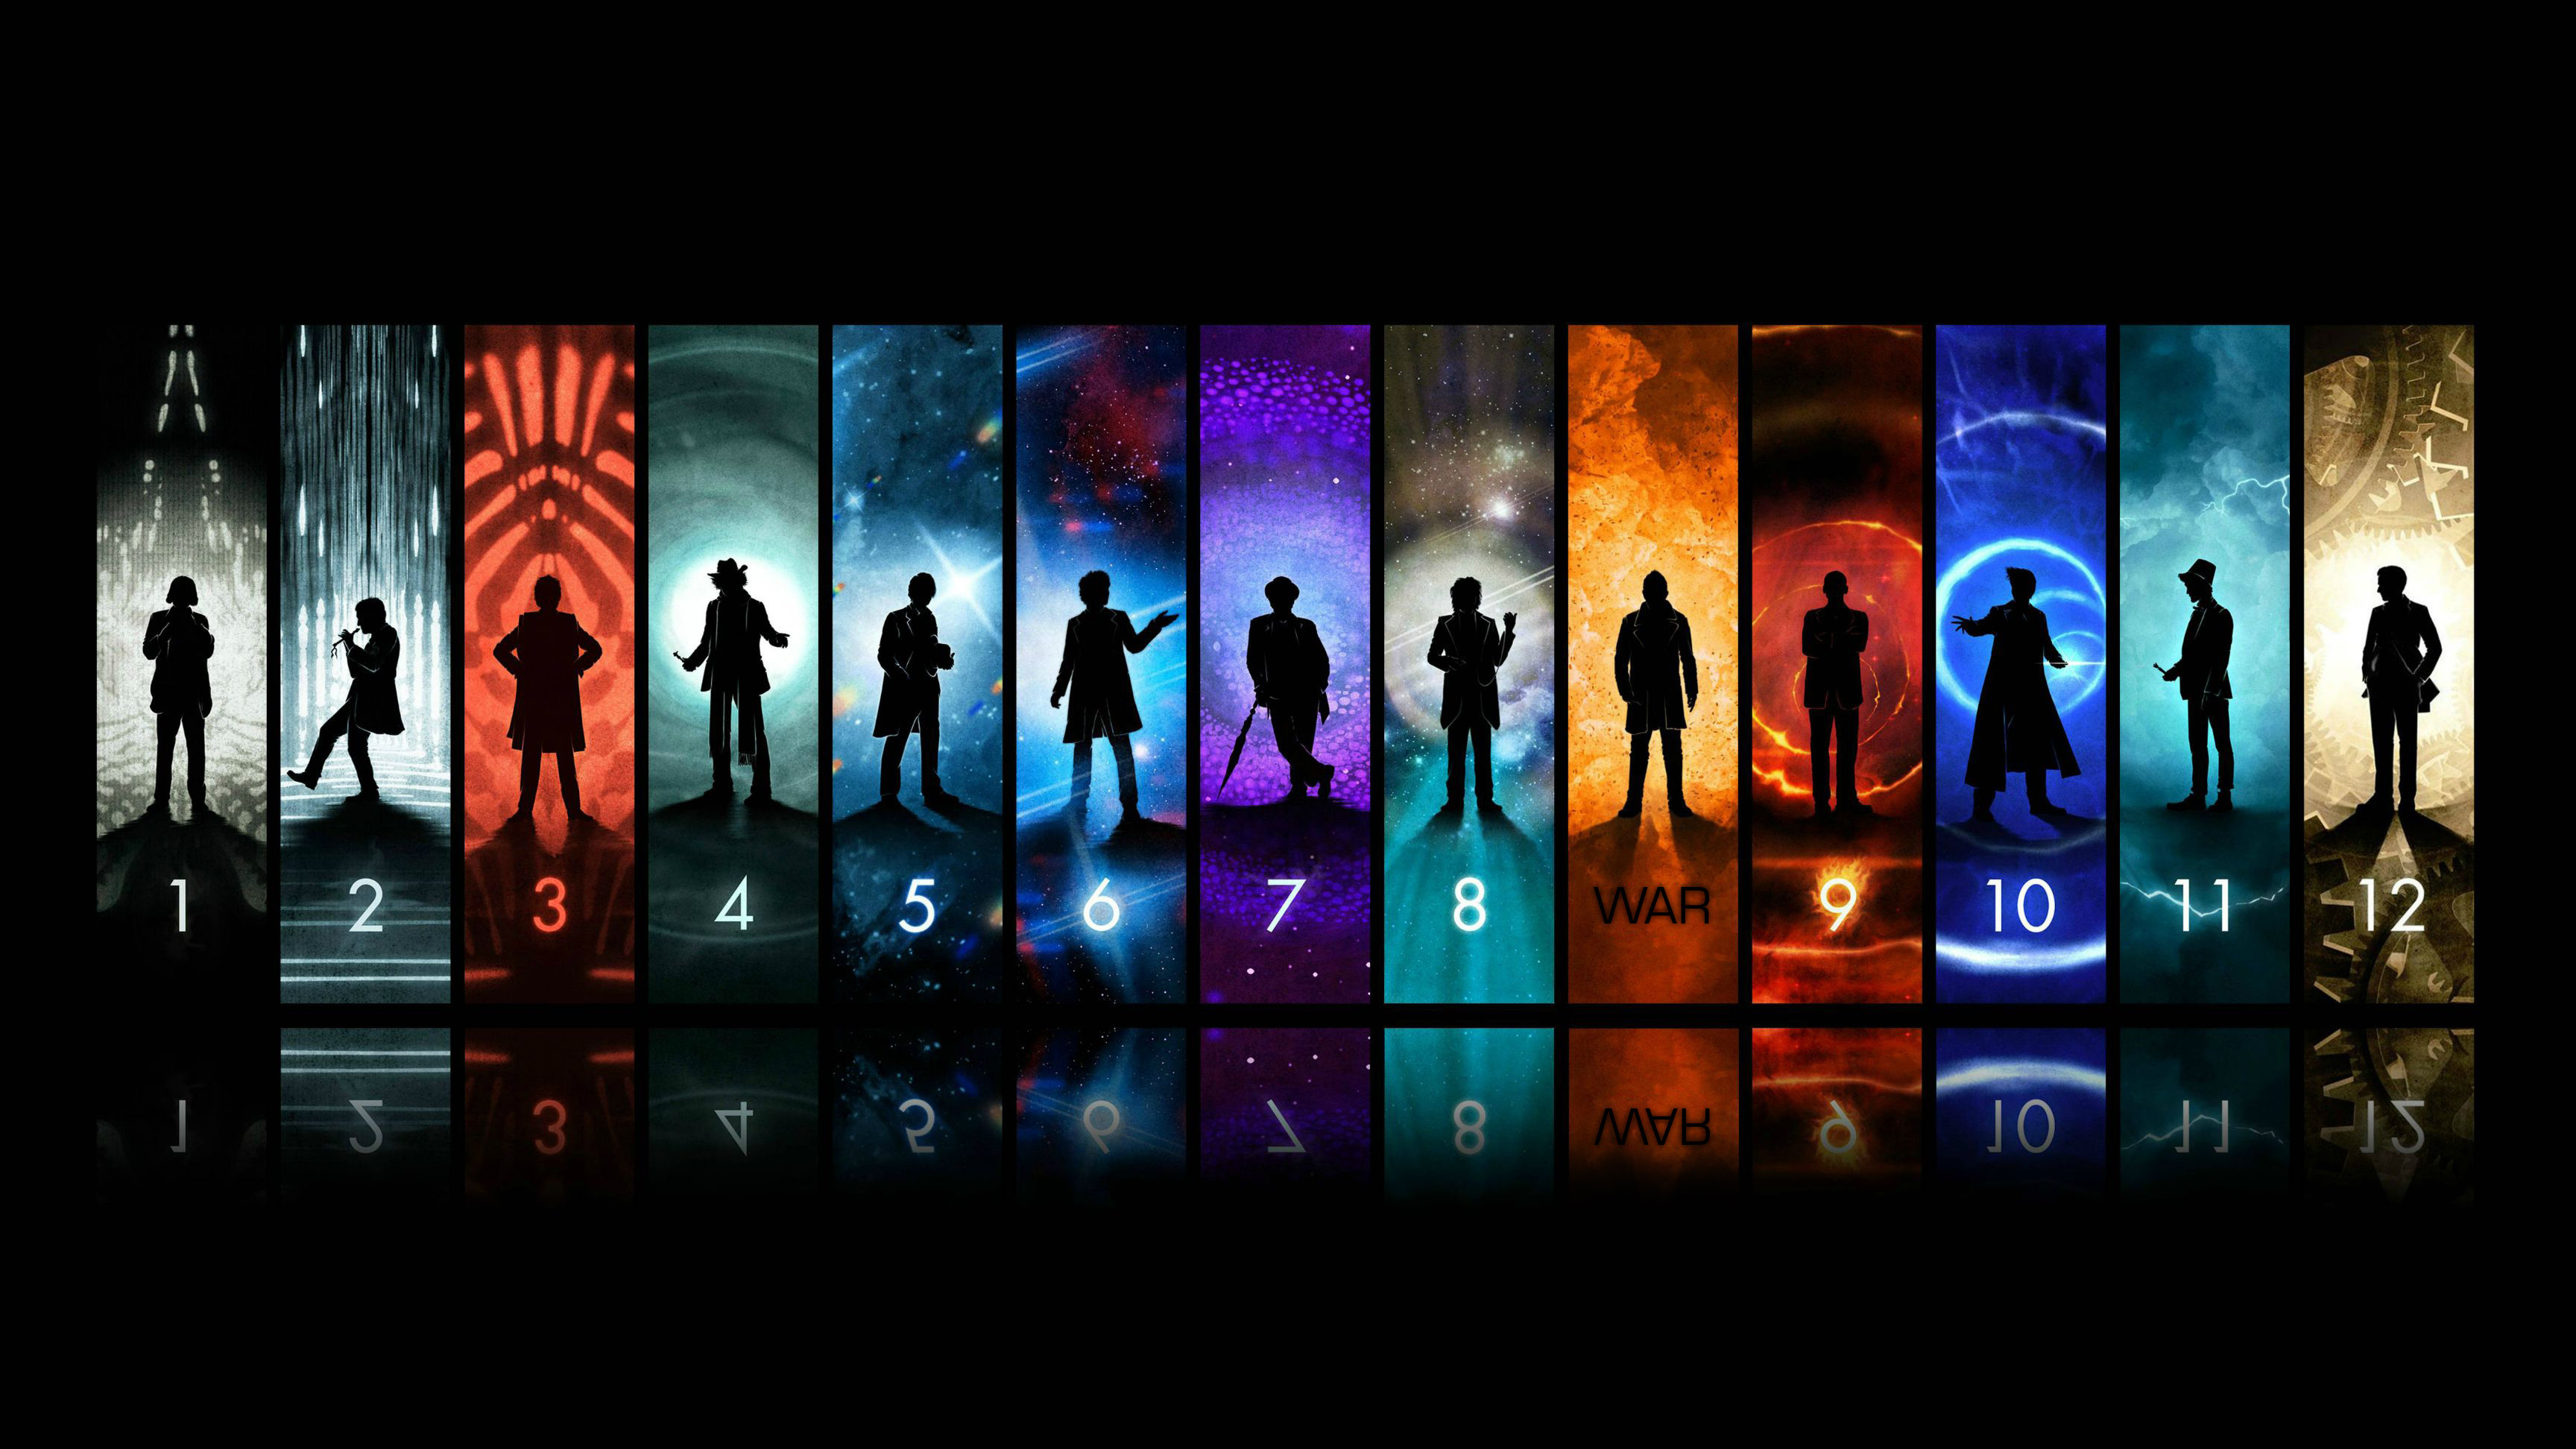 dr who wallpapers for desktop #4